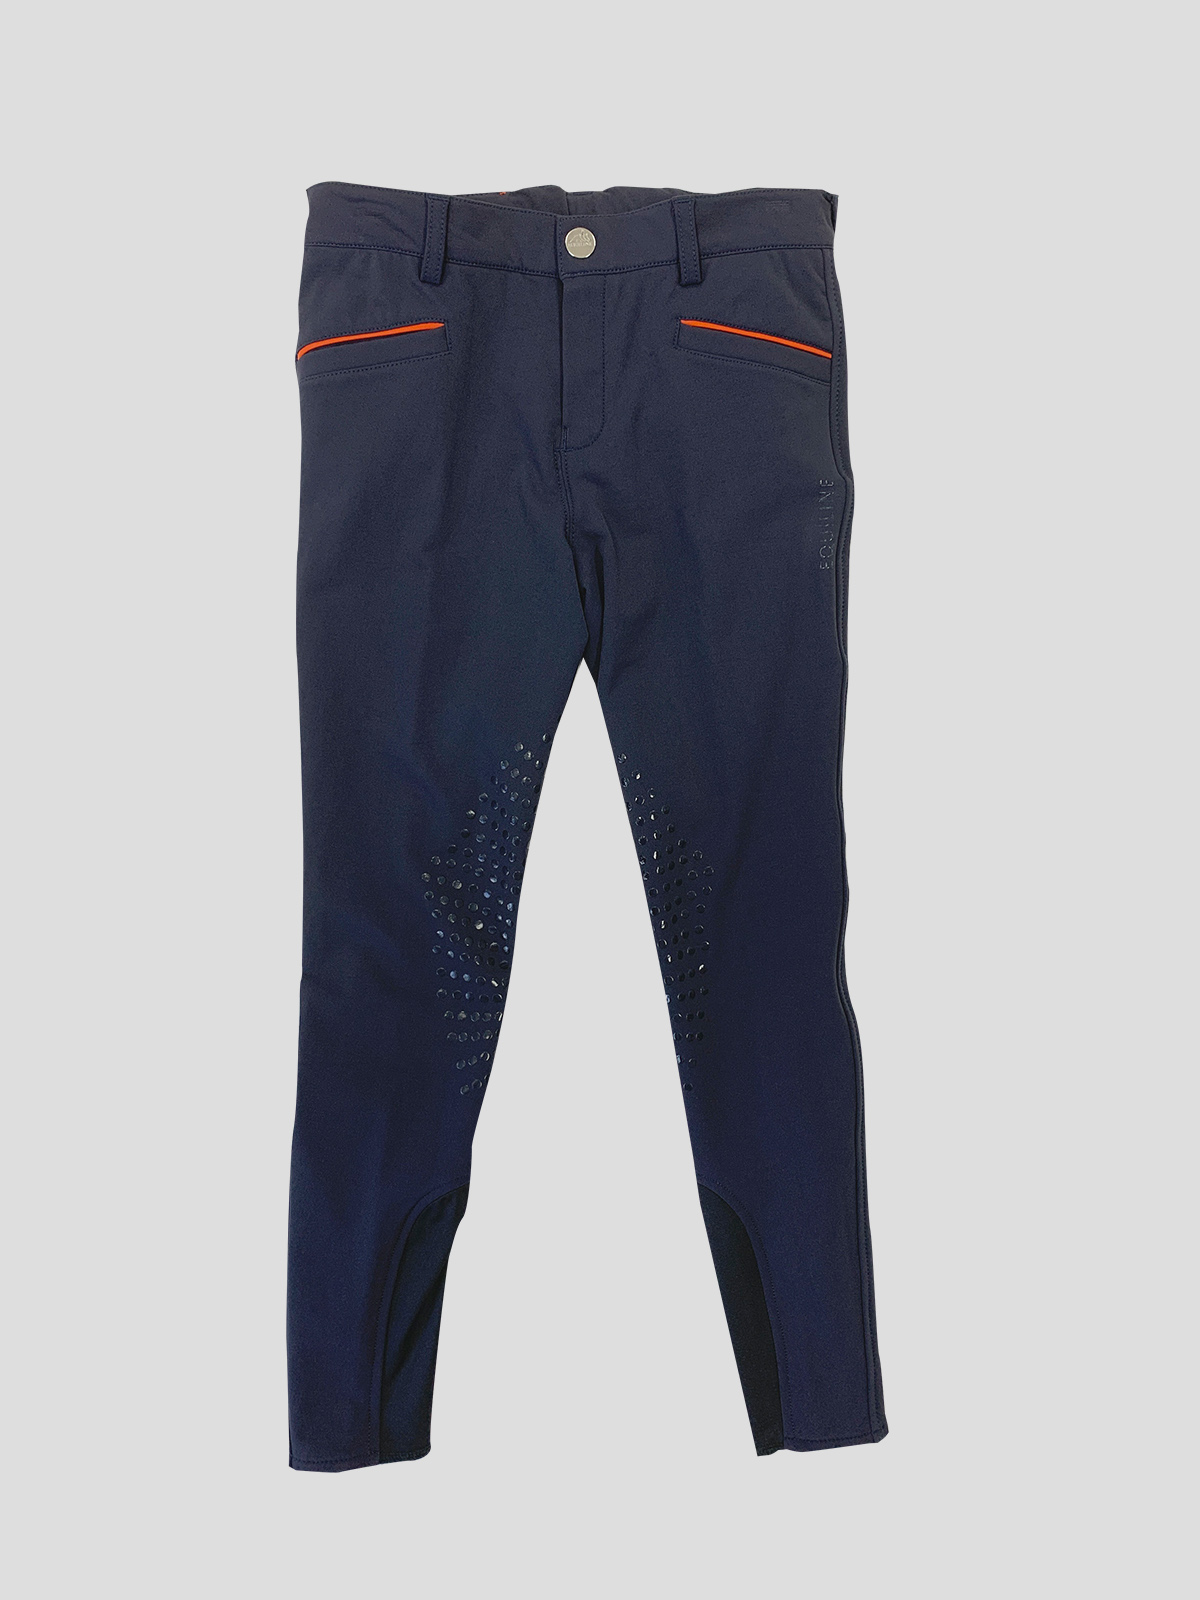 JORDAN KIDS BREECHES WITH KNEE GRIP 1